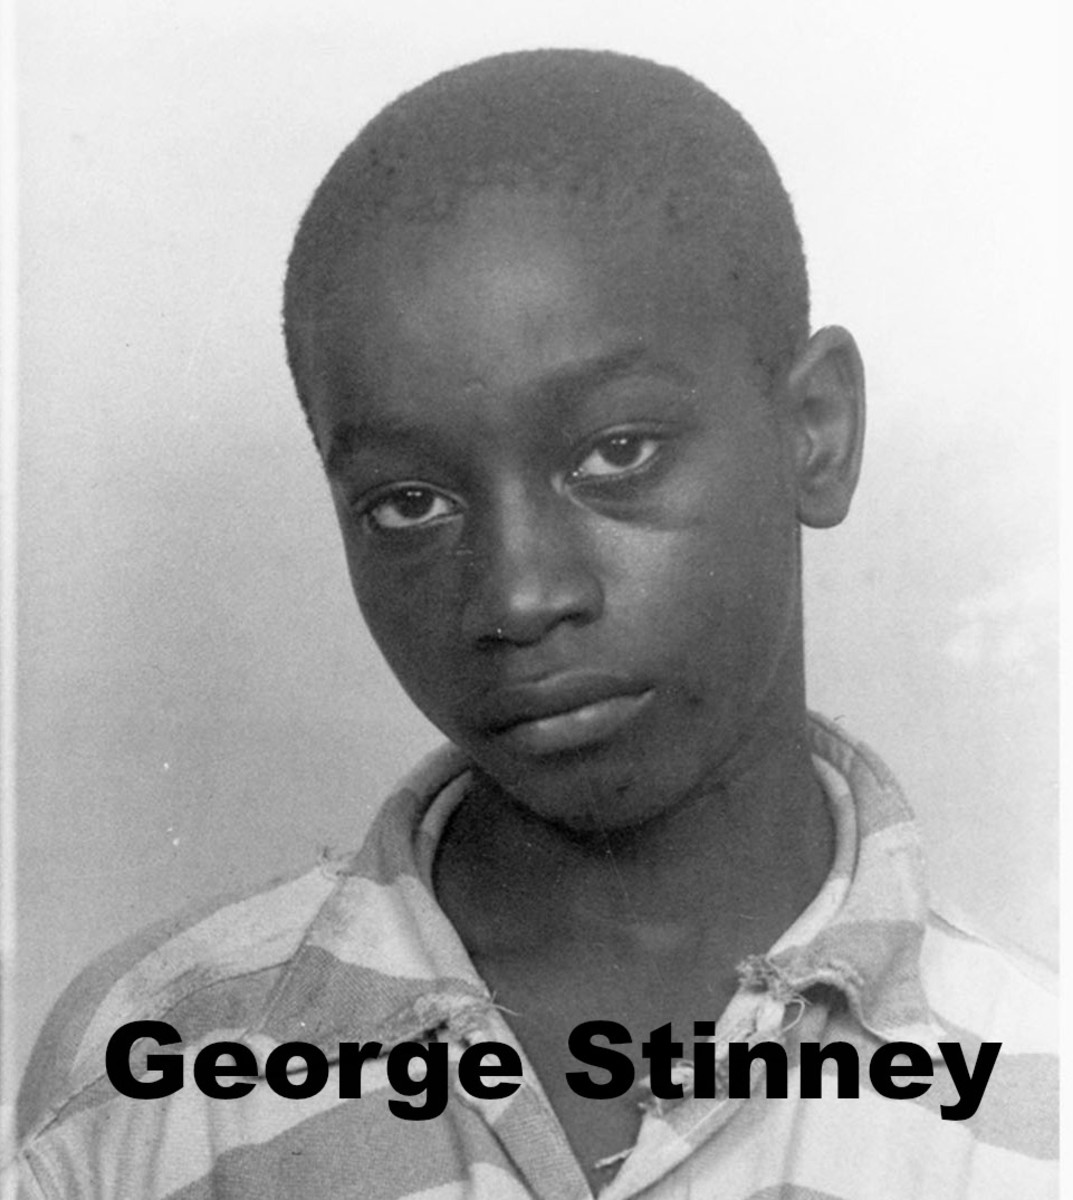 George Stinney was 14 years old when this mug shot was taken.